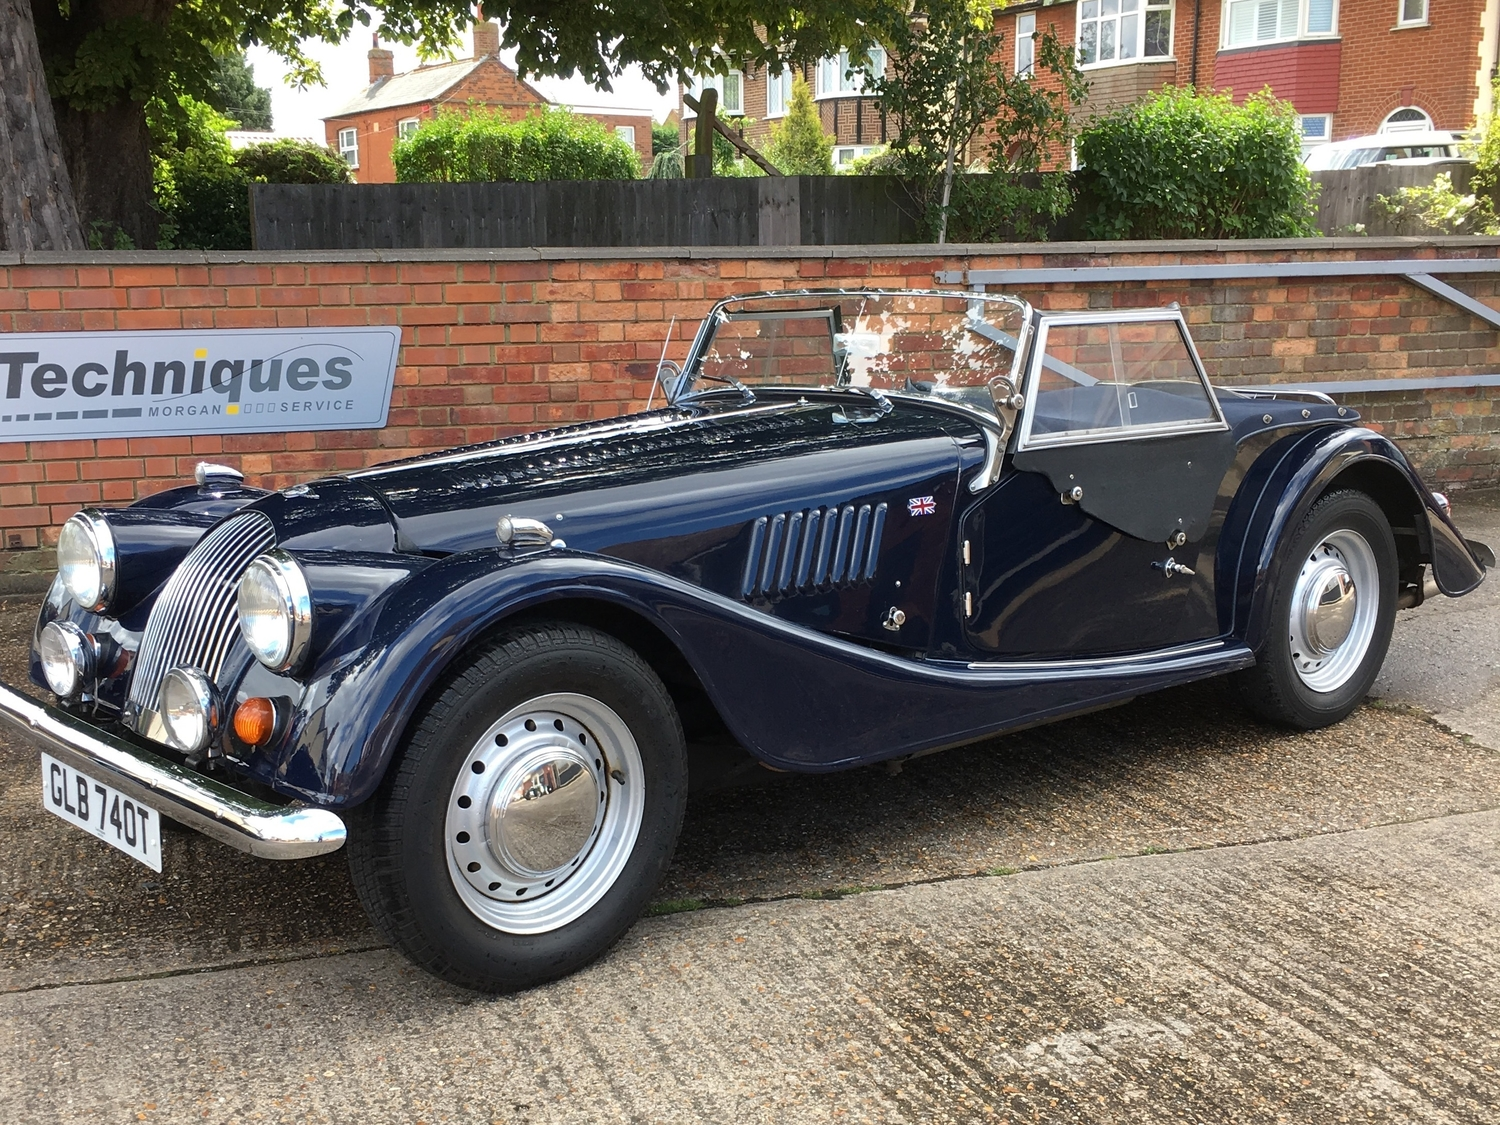 SOLD - Classic Morgan 4/4 2-seater